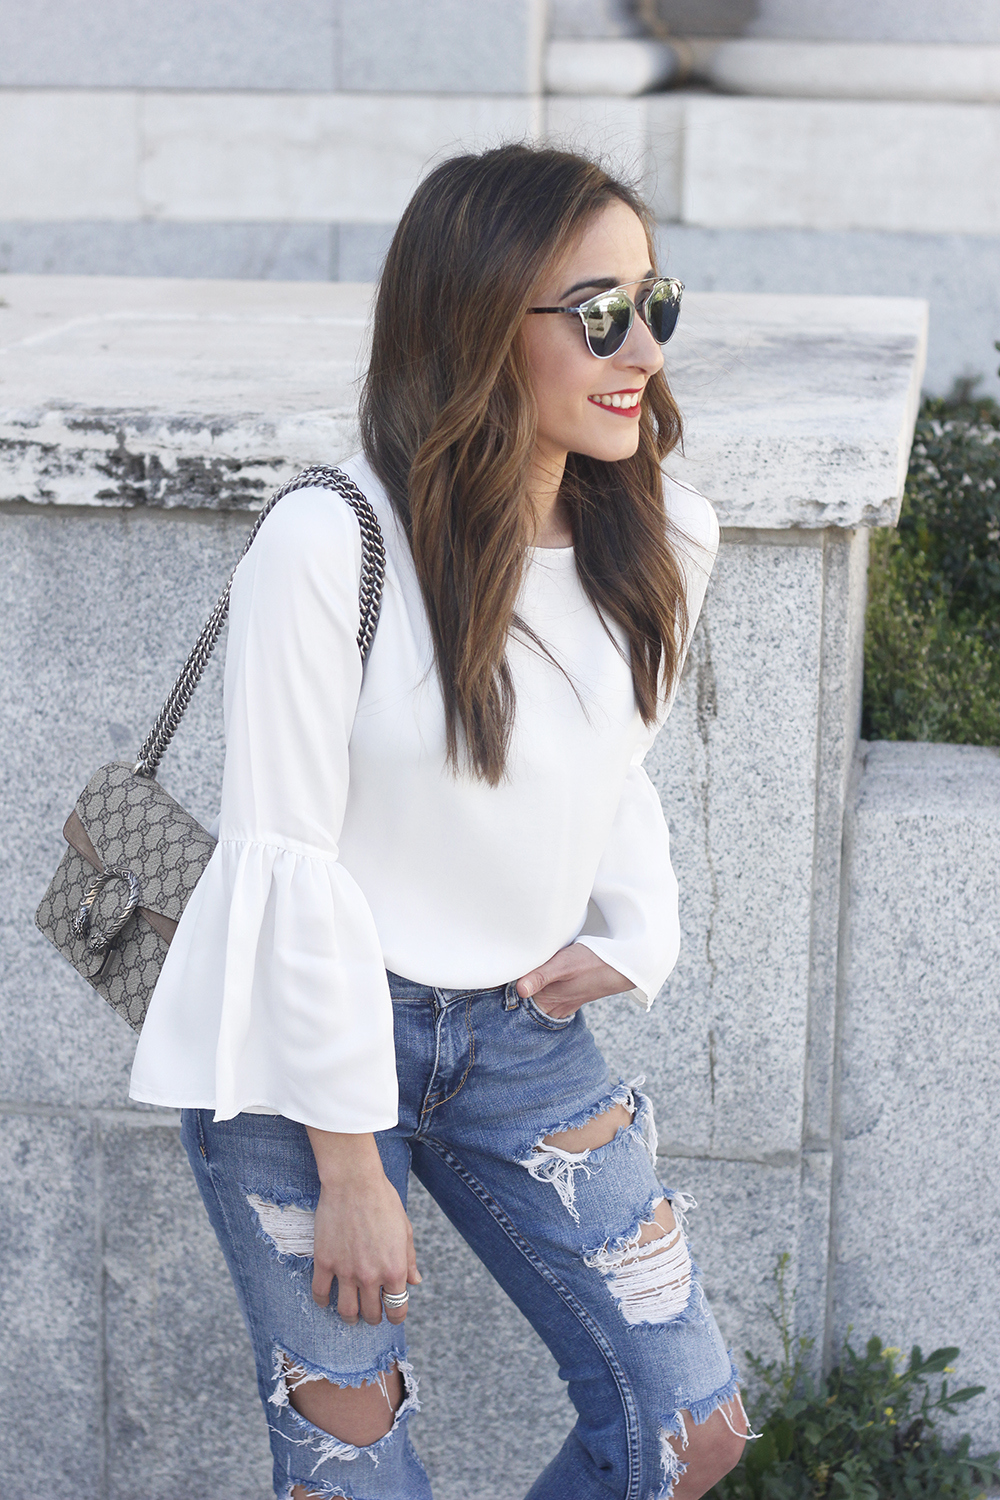 ripped keans gucci bag Jewel ballerinas uterqüe white blouse outfit style fashion04